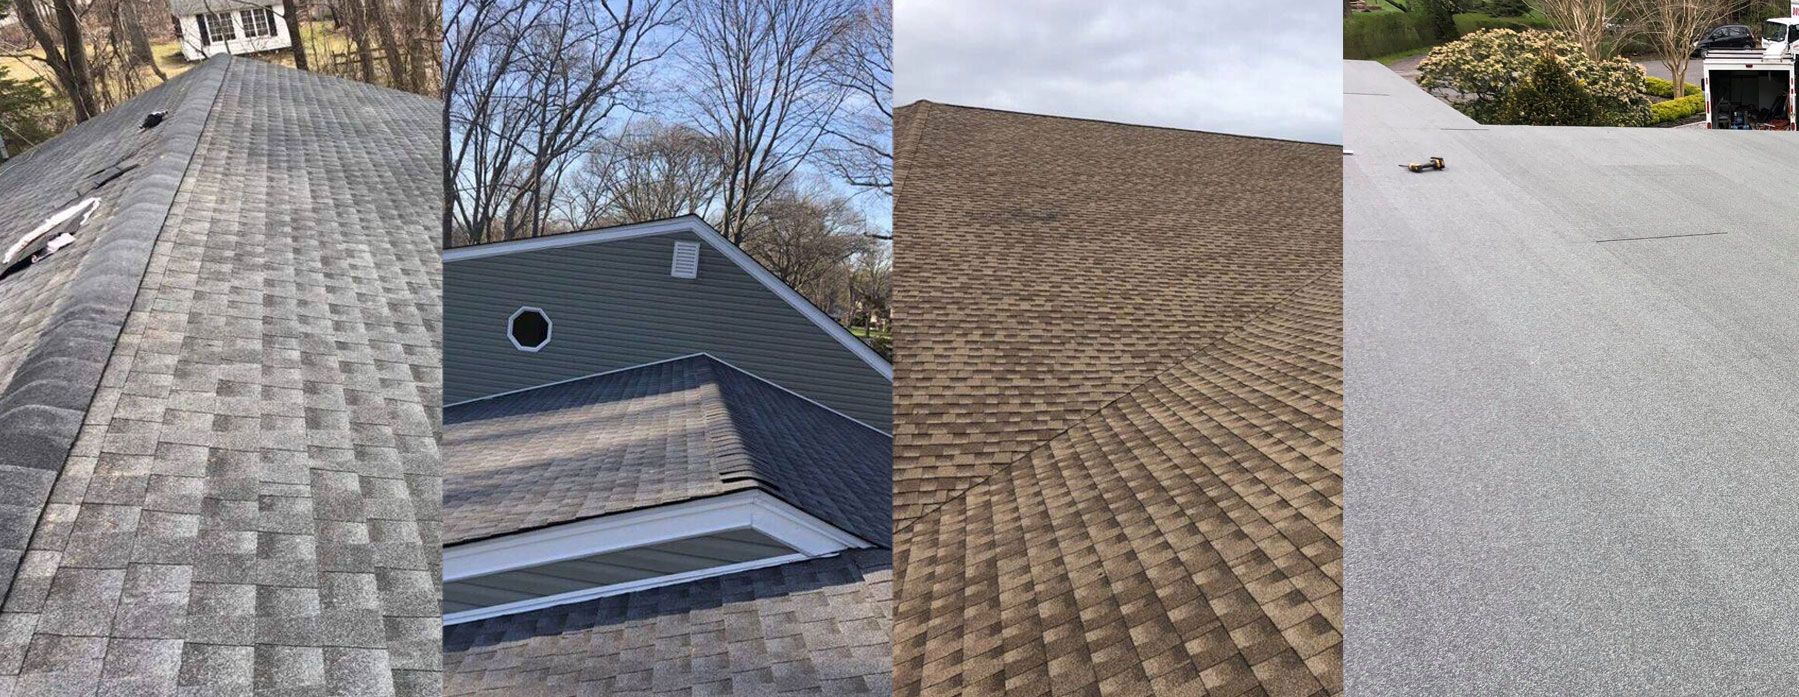 Roofing Repair And Installation Lindenhurst Ny